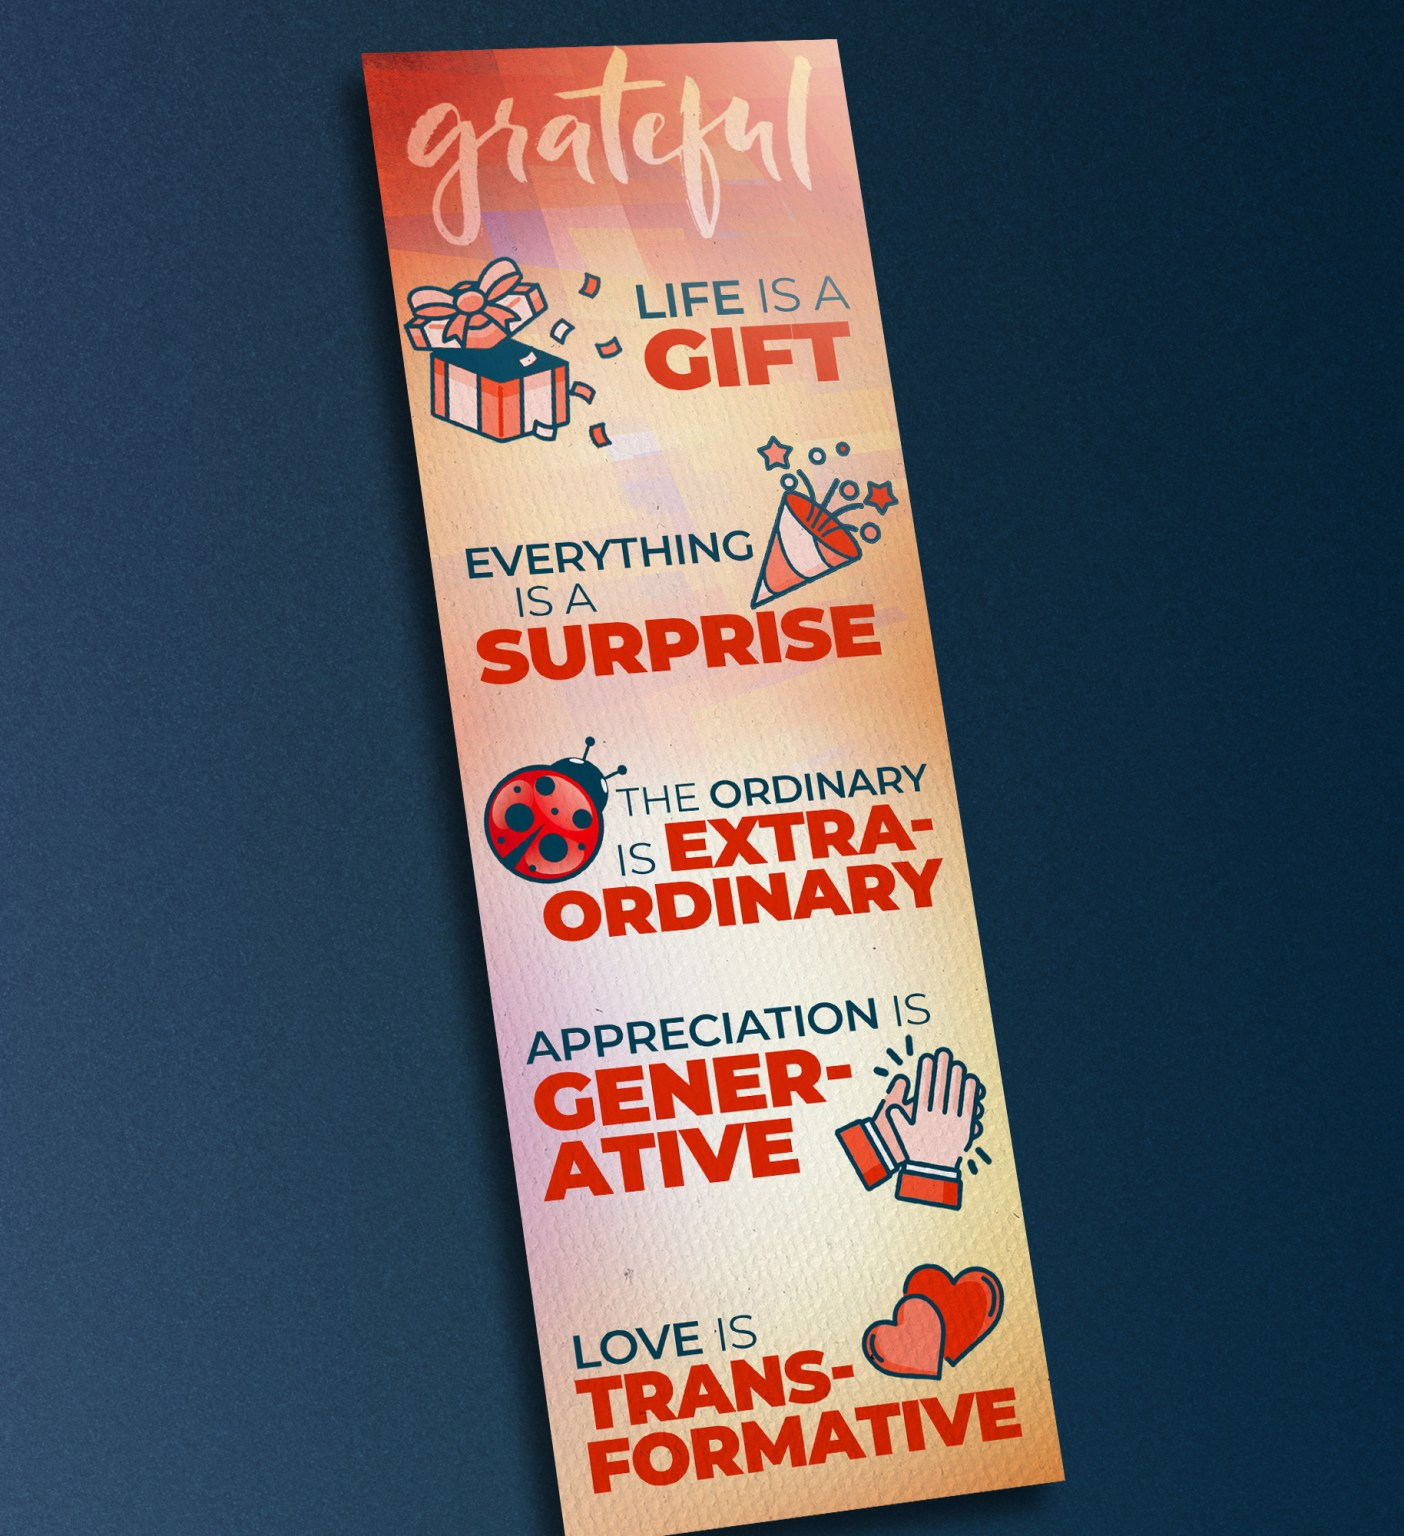 Bookmark featuring the five key principles of gratitude to go along with the presentation